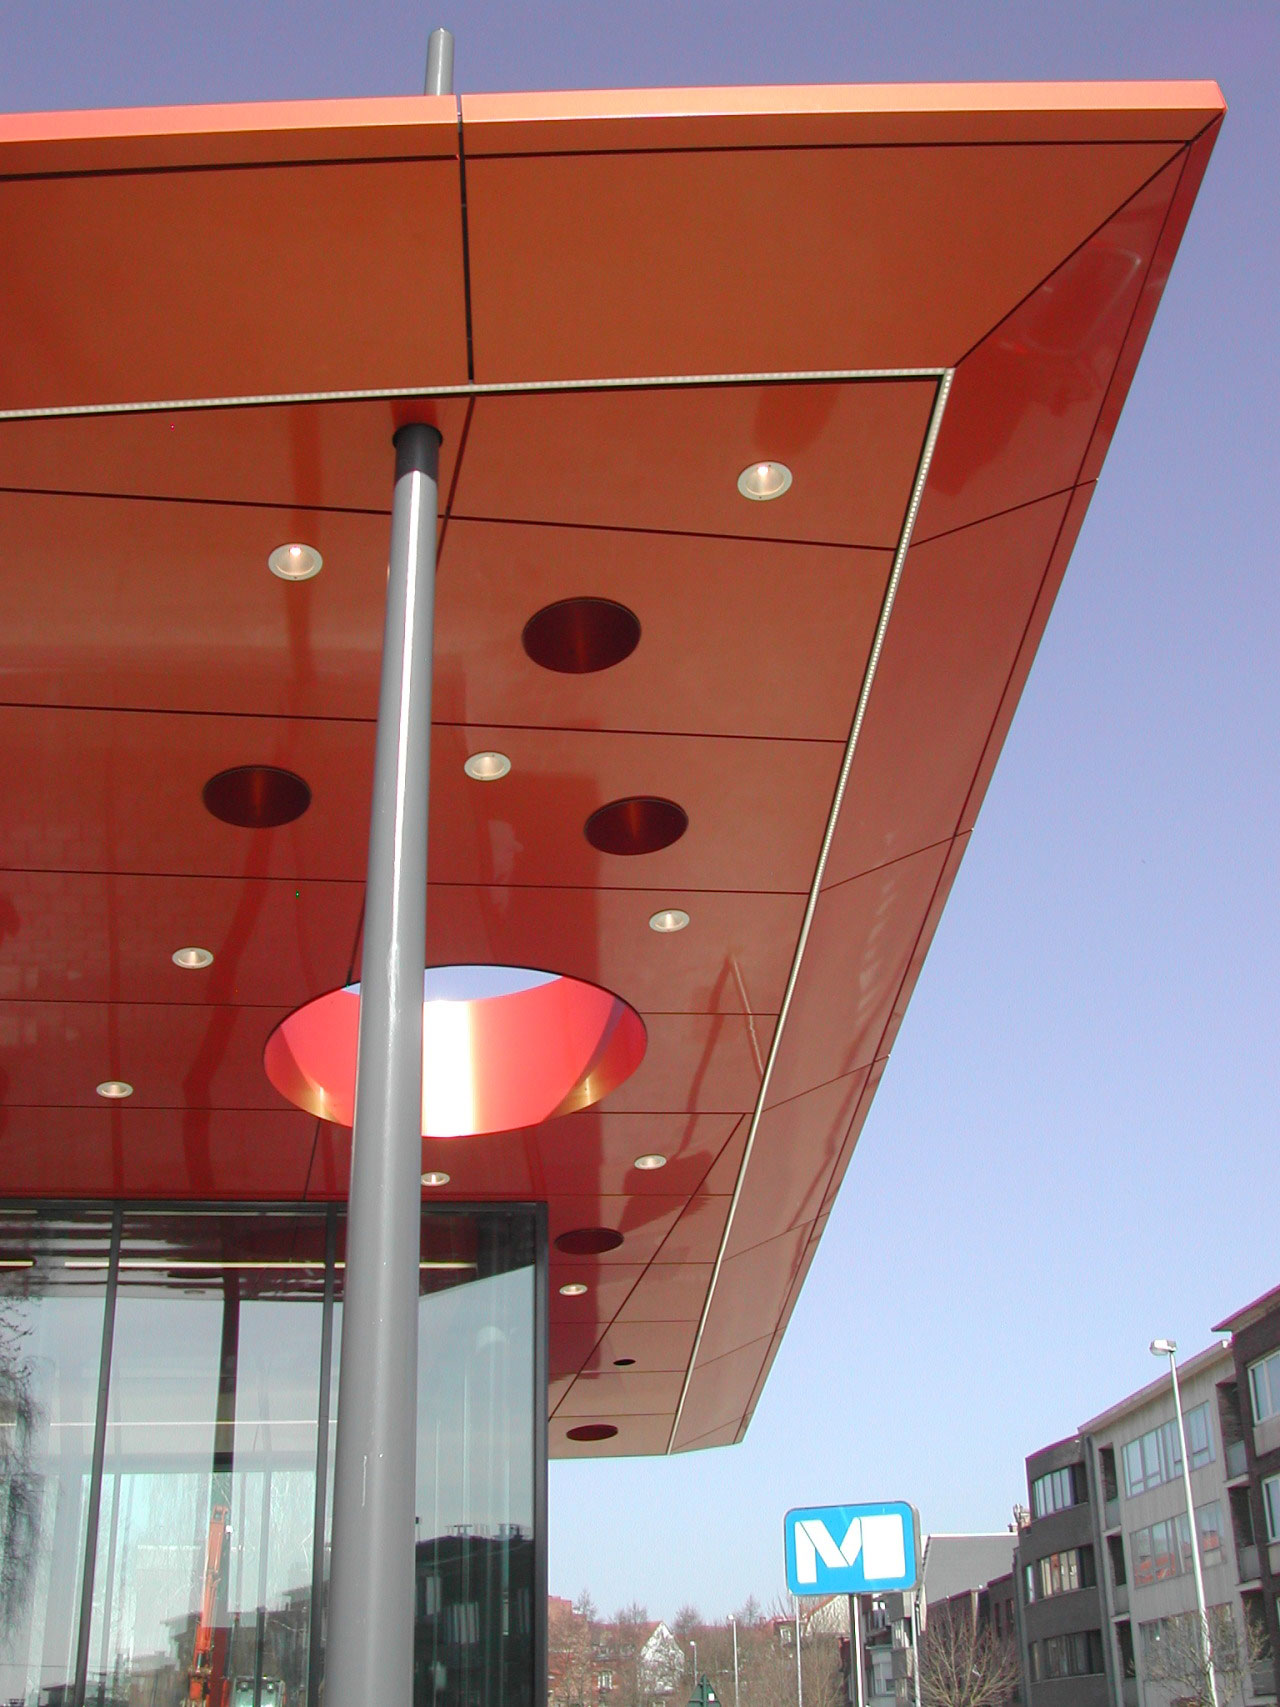 King Baudouin Metro Station, GS3 Associes, Alucobond A2 Spectra Cupral